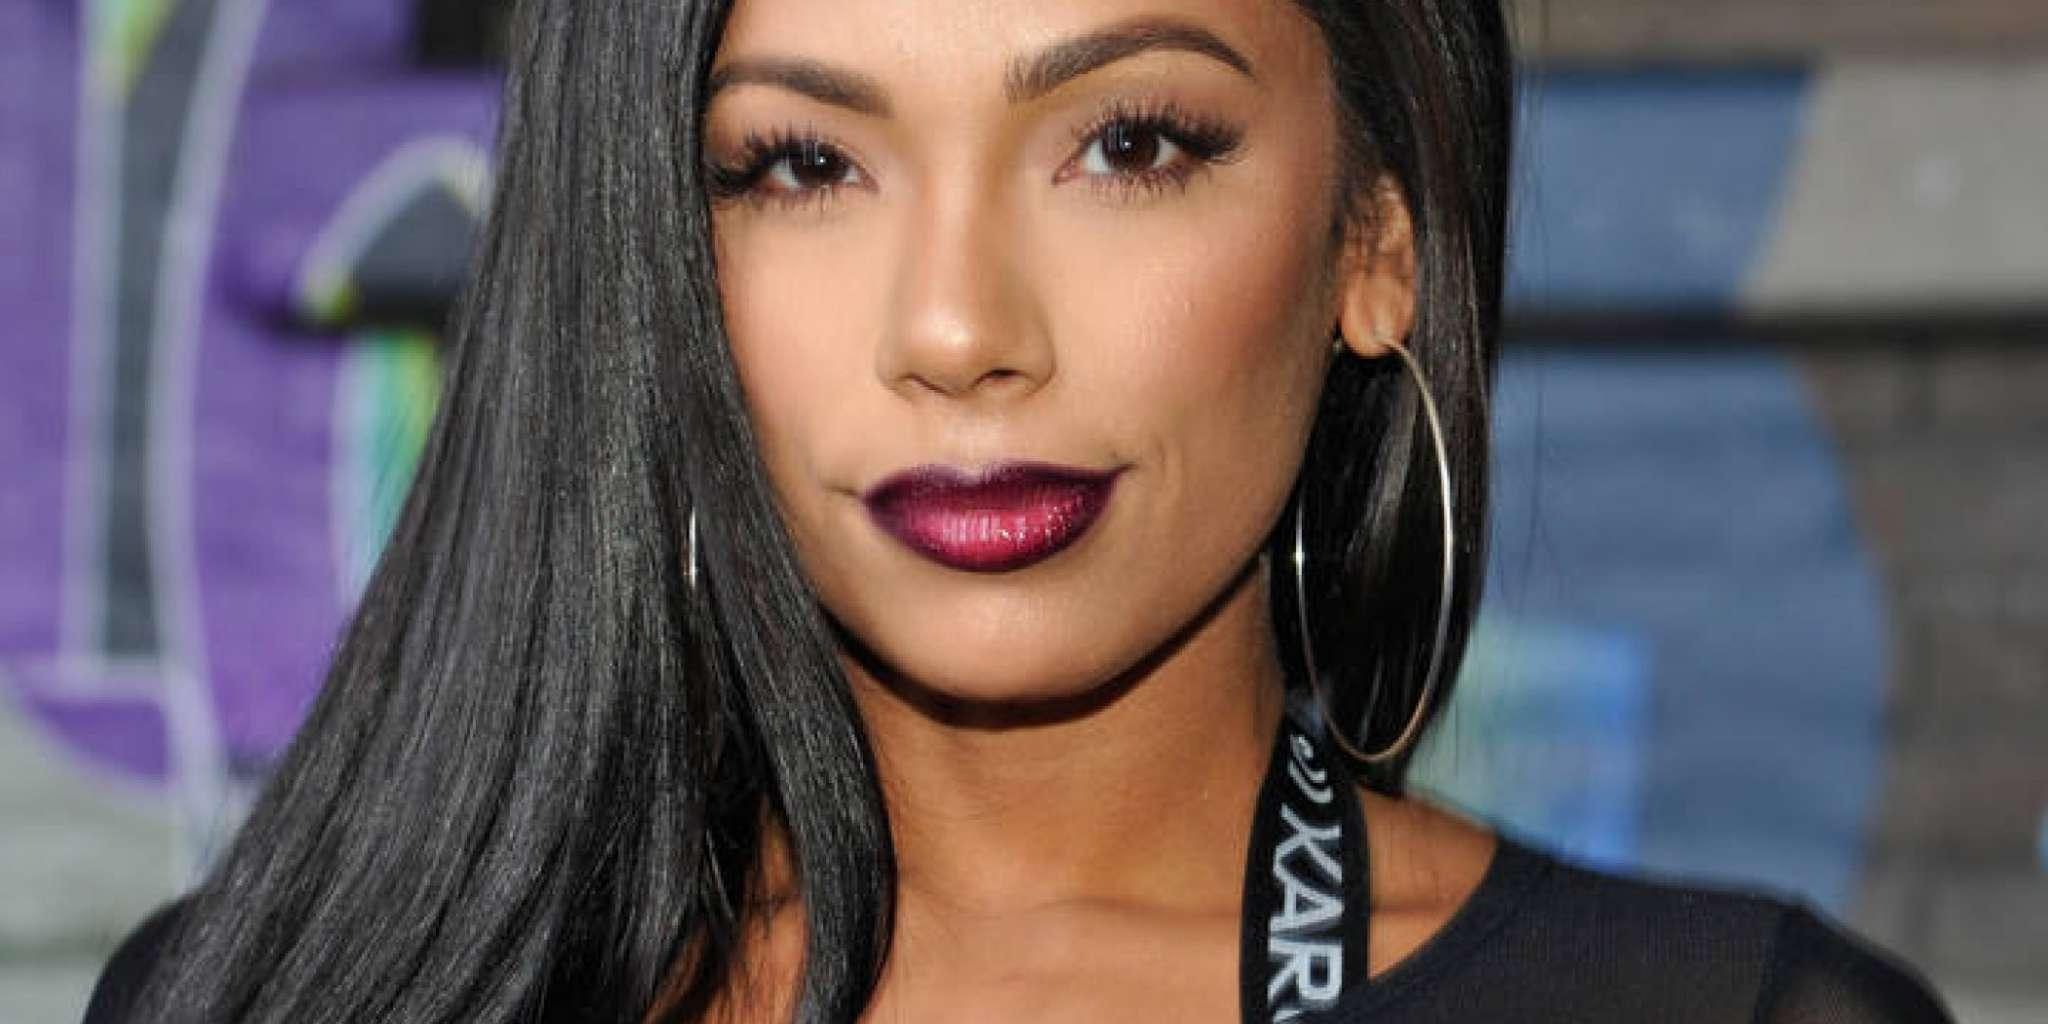 Erica Mena Surprises Fans With A New Giveaway - Check It Out Here